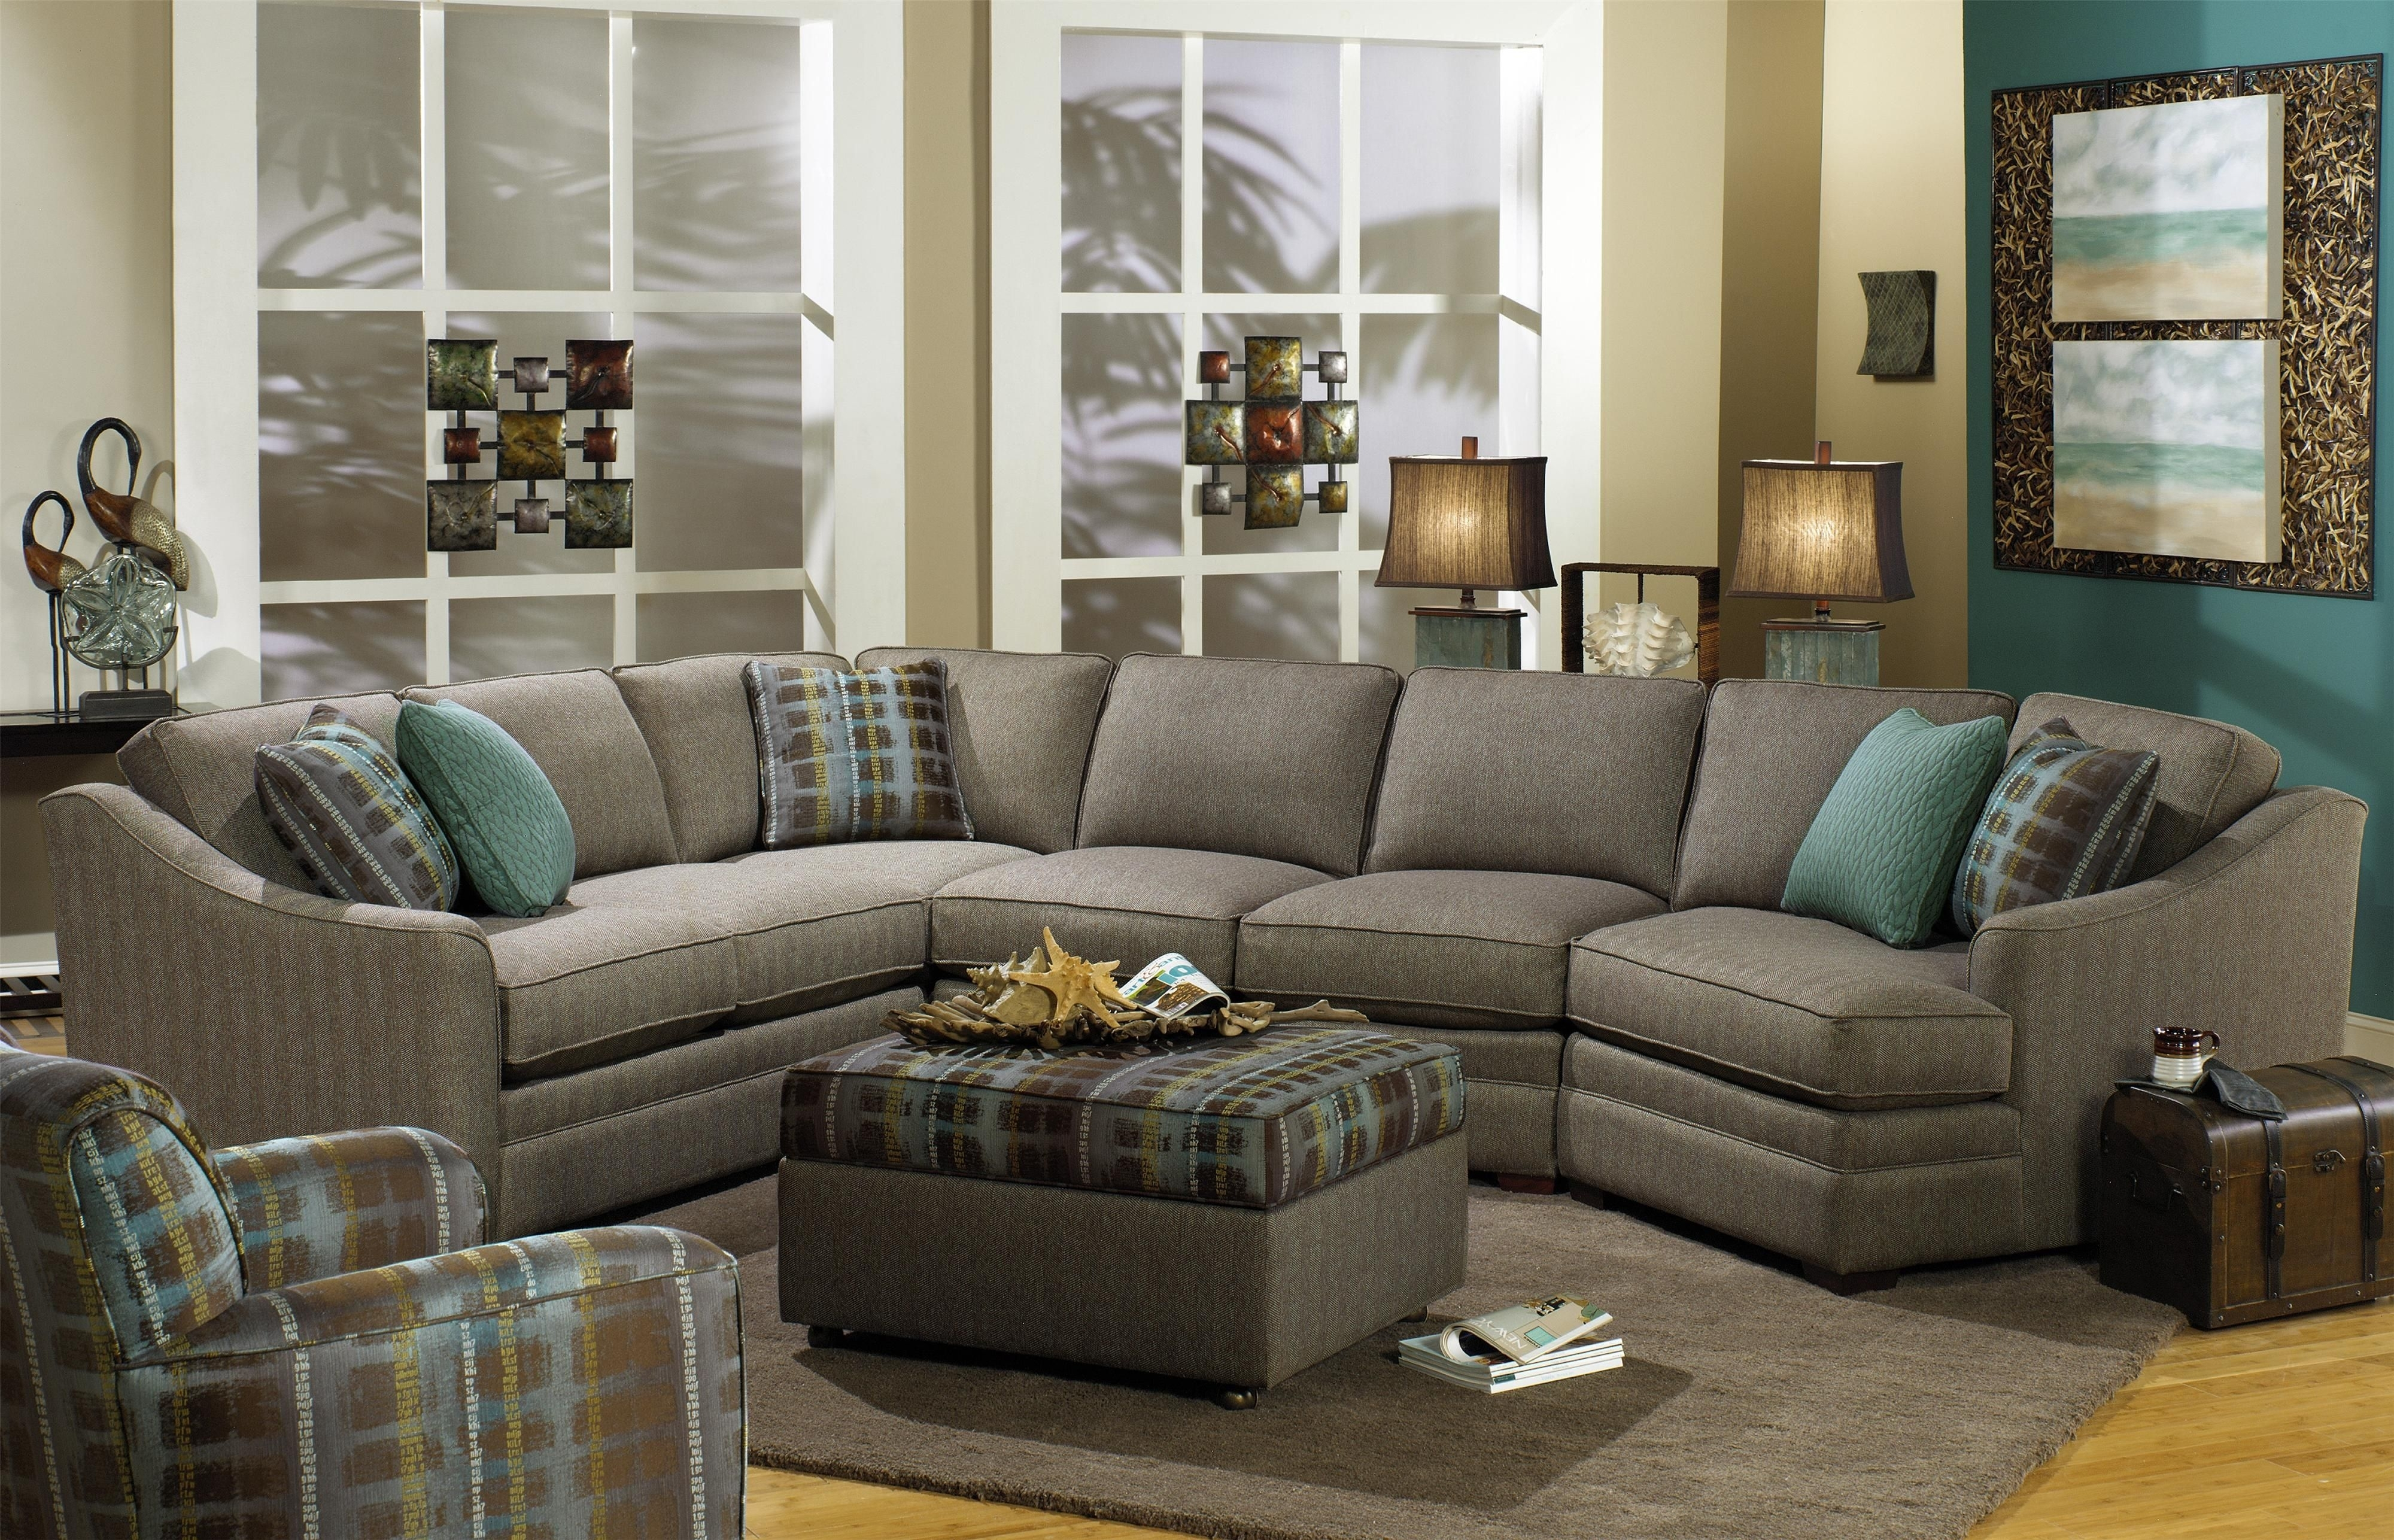 F9 Custom Collection Customizable 3 Piece Sectional With Laf Cuddler Regarding Benton 4 Piece Sectionals (Image 12 of 25)